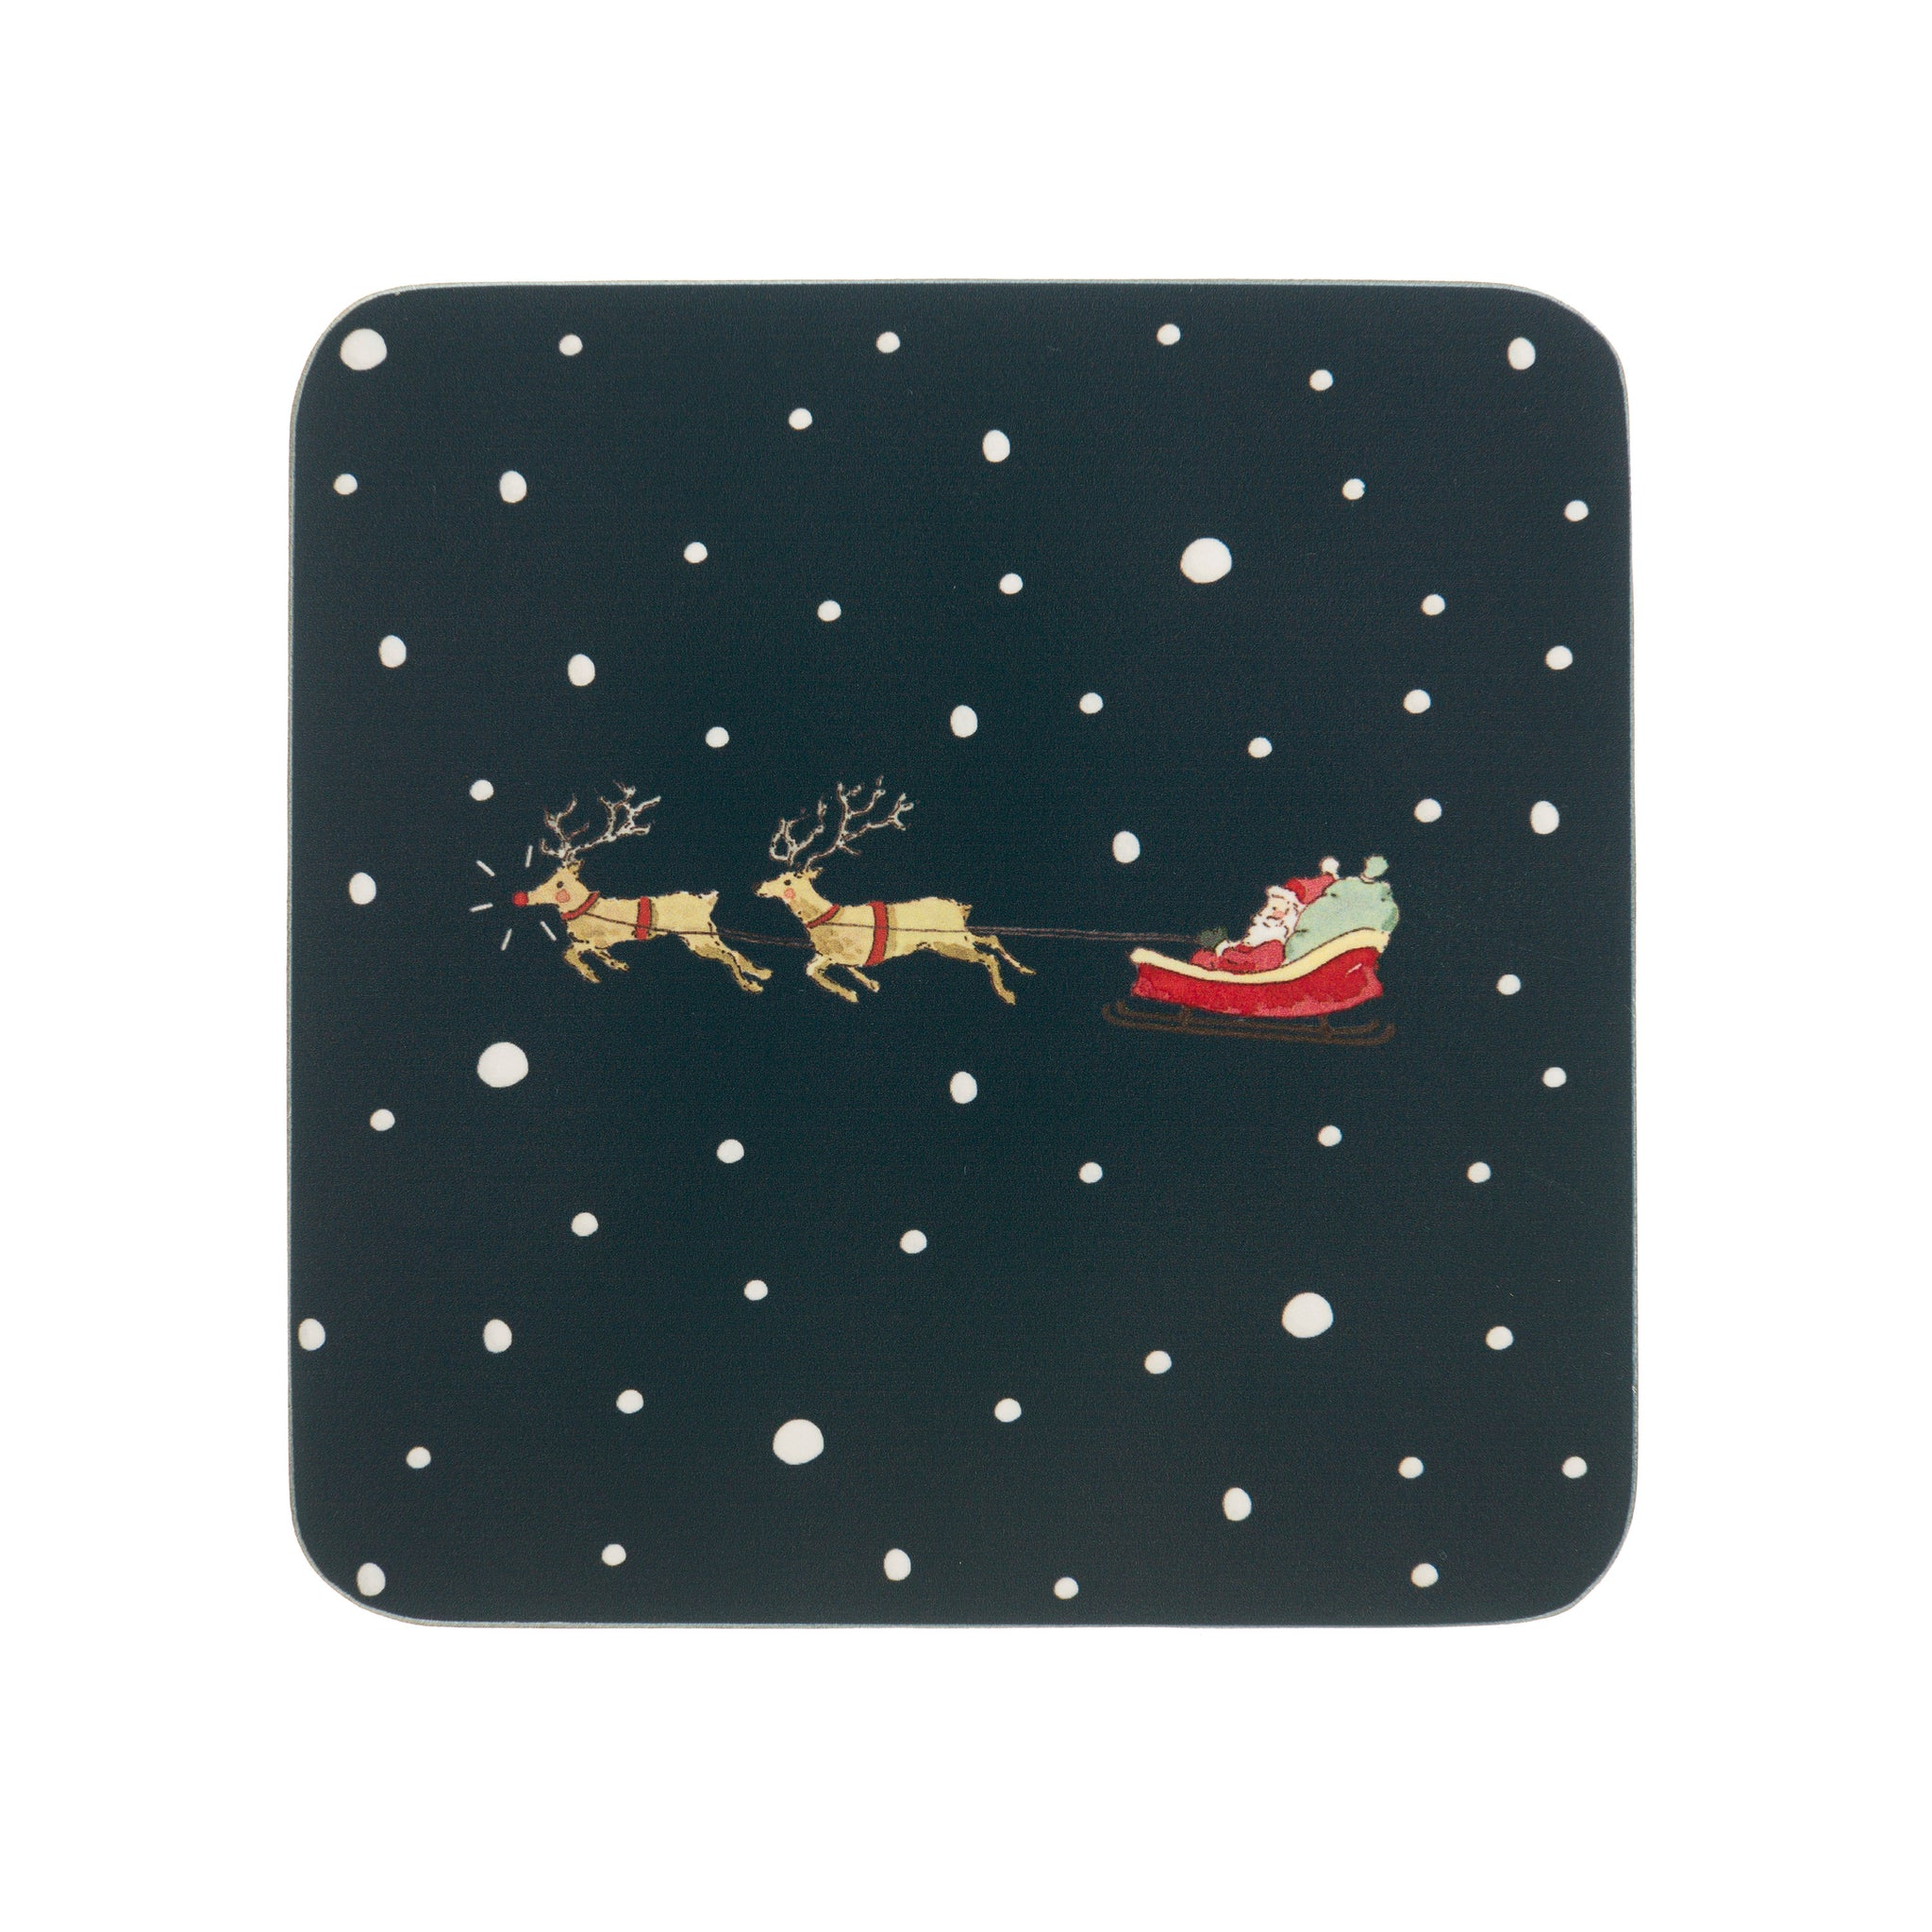 Home for Christmas Coasters (Set of 4)